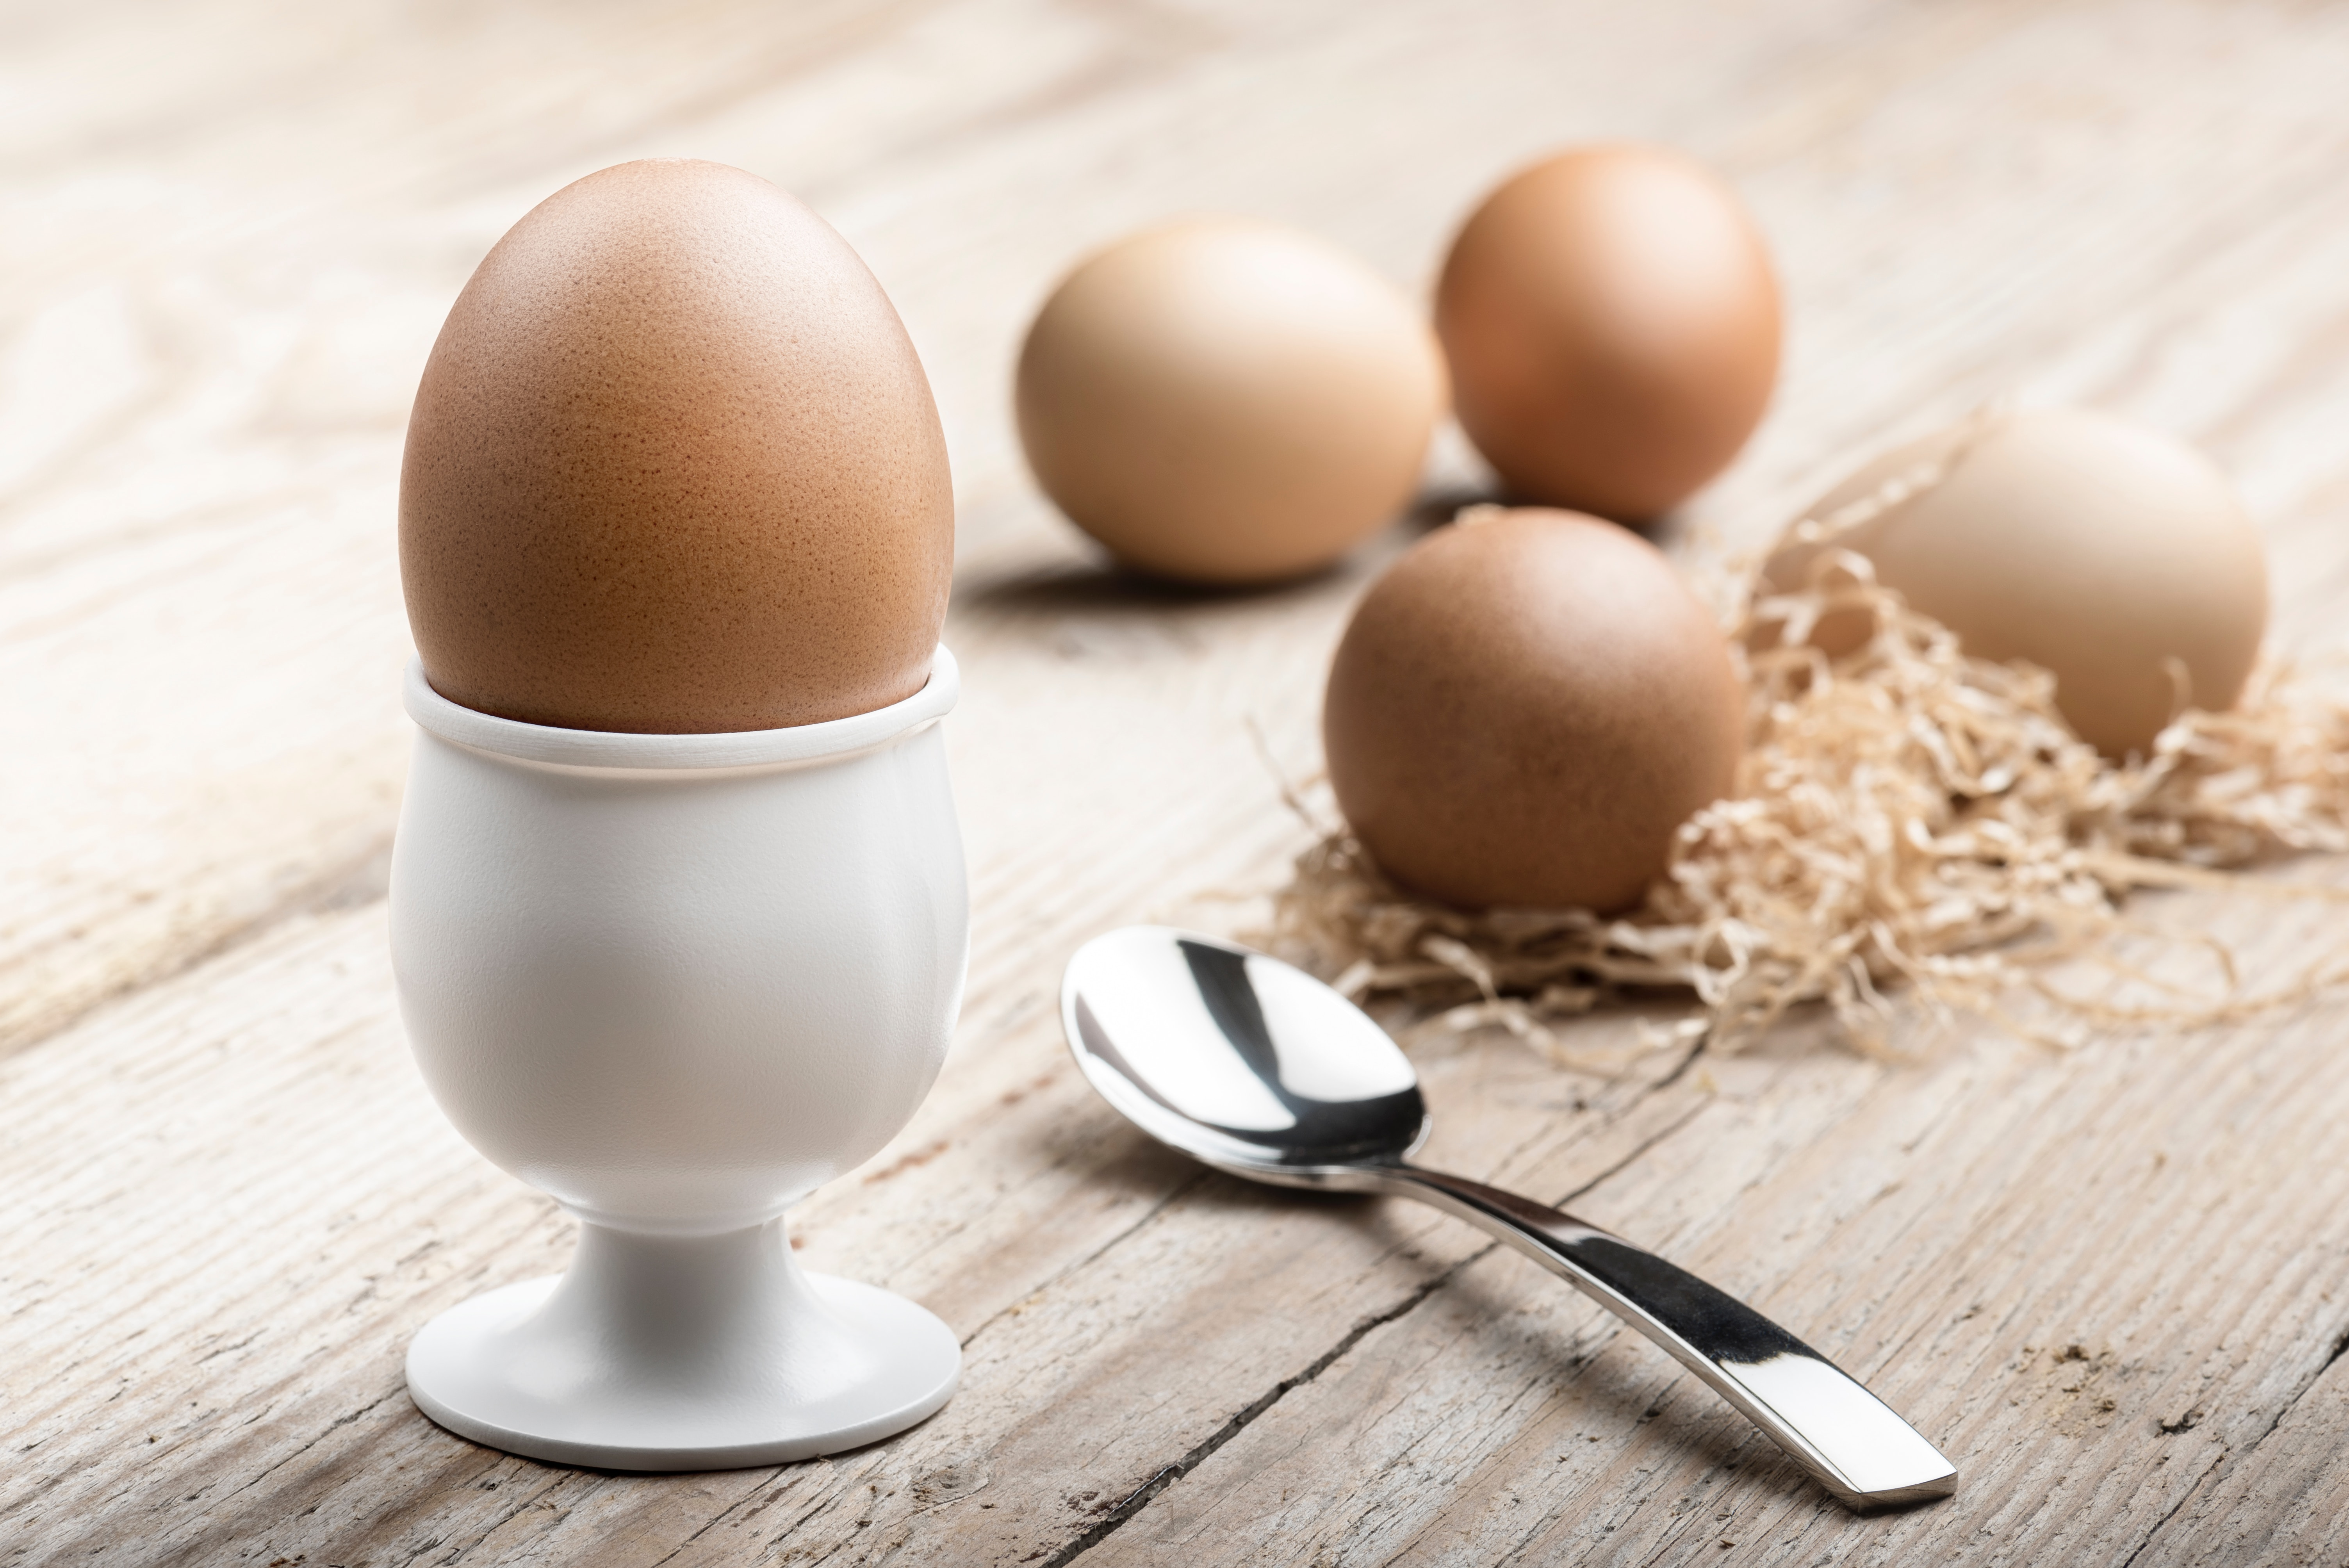 Eggs in any Form is Perfect for Breakfast